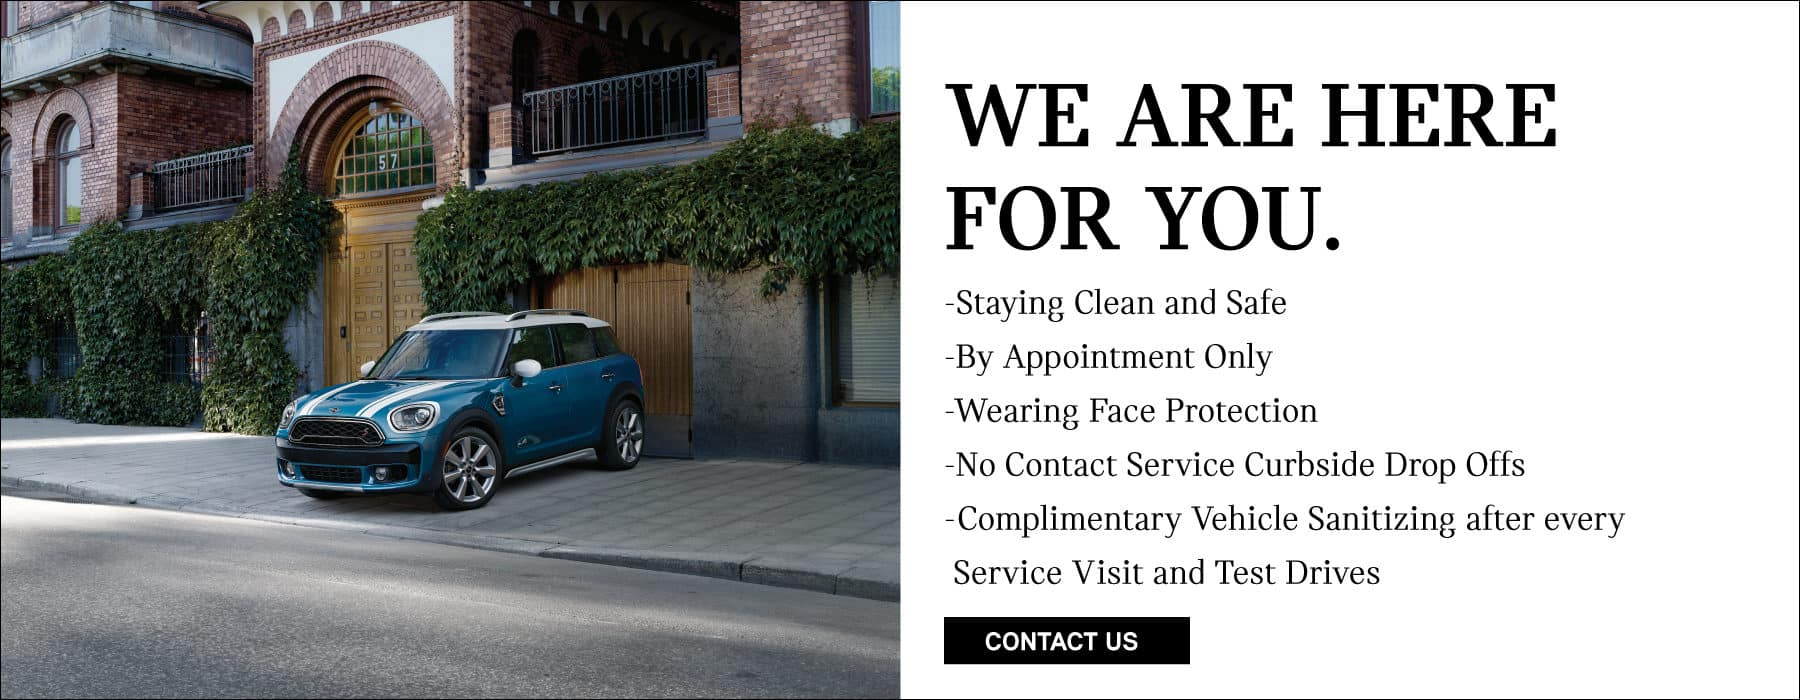 WE ARE HERE FOR YOU. Staying clean and safe. By appointment only. Wearing face protection. No contact curbside drop off. Complimentary Vehicle Sanitation after every service visit and test drive.